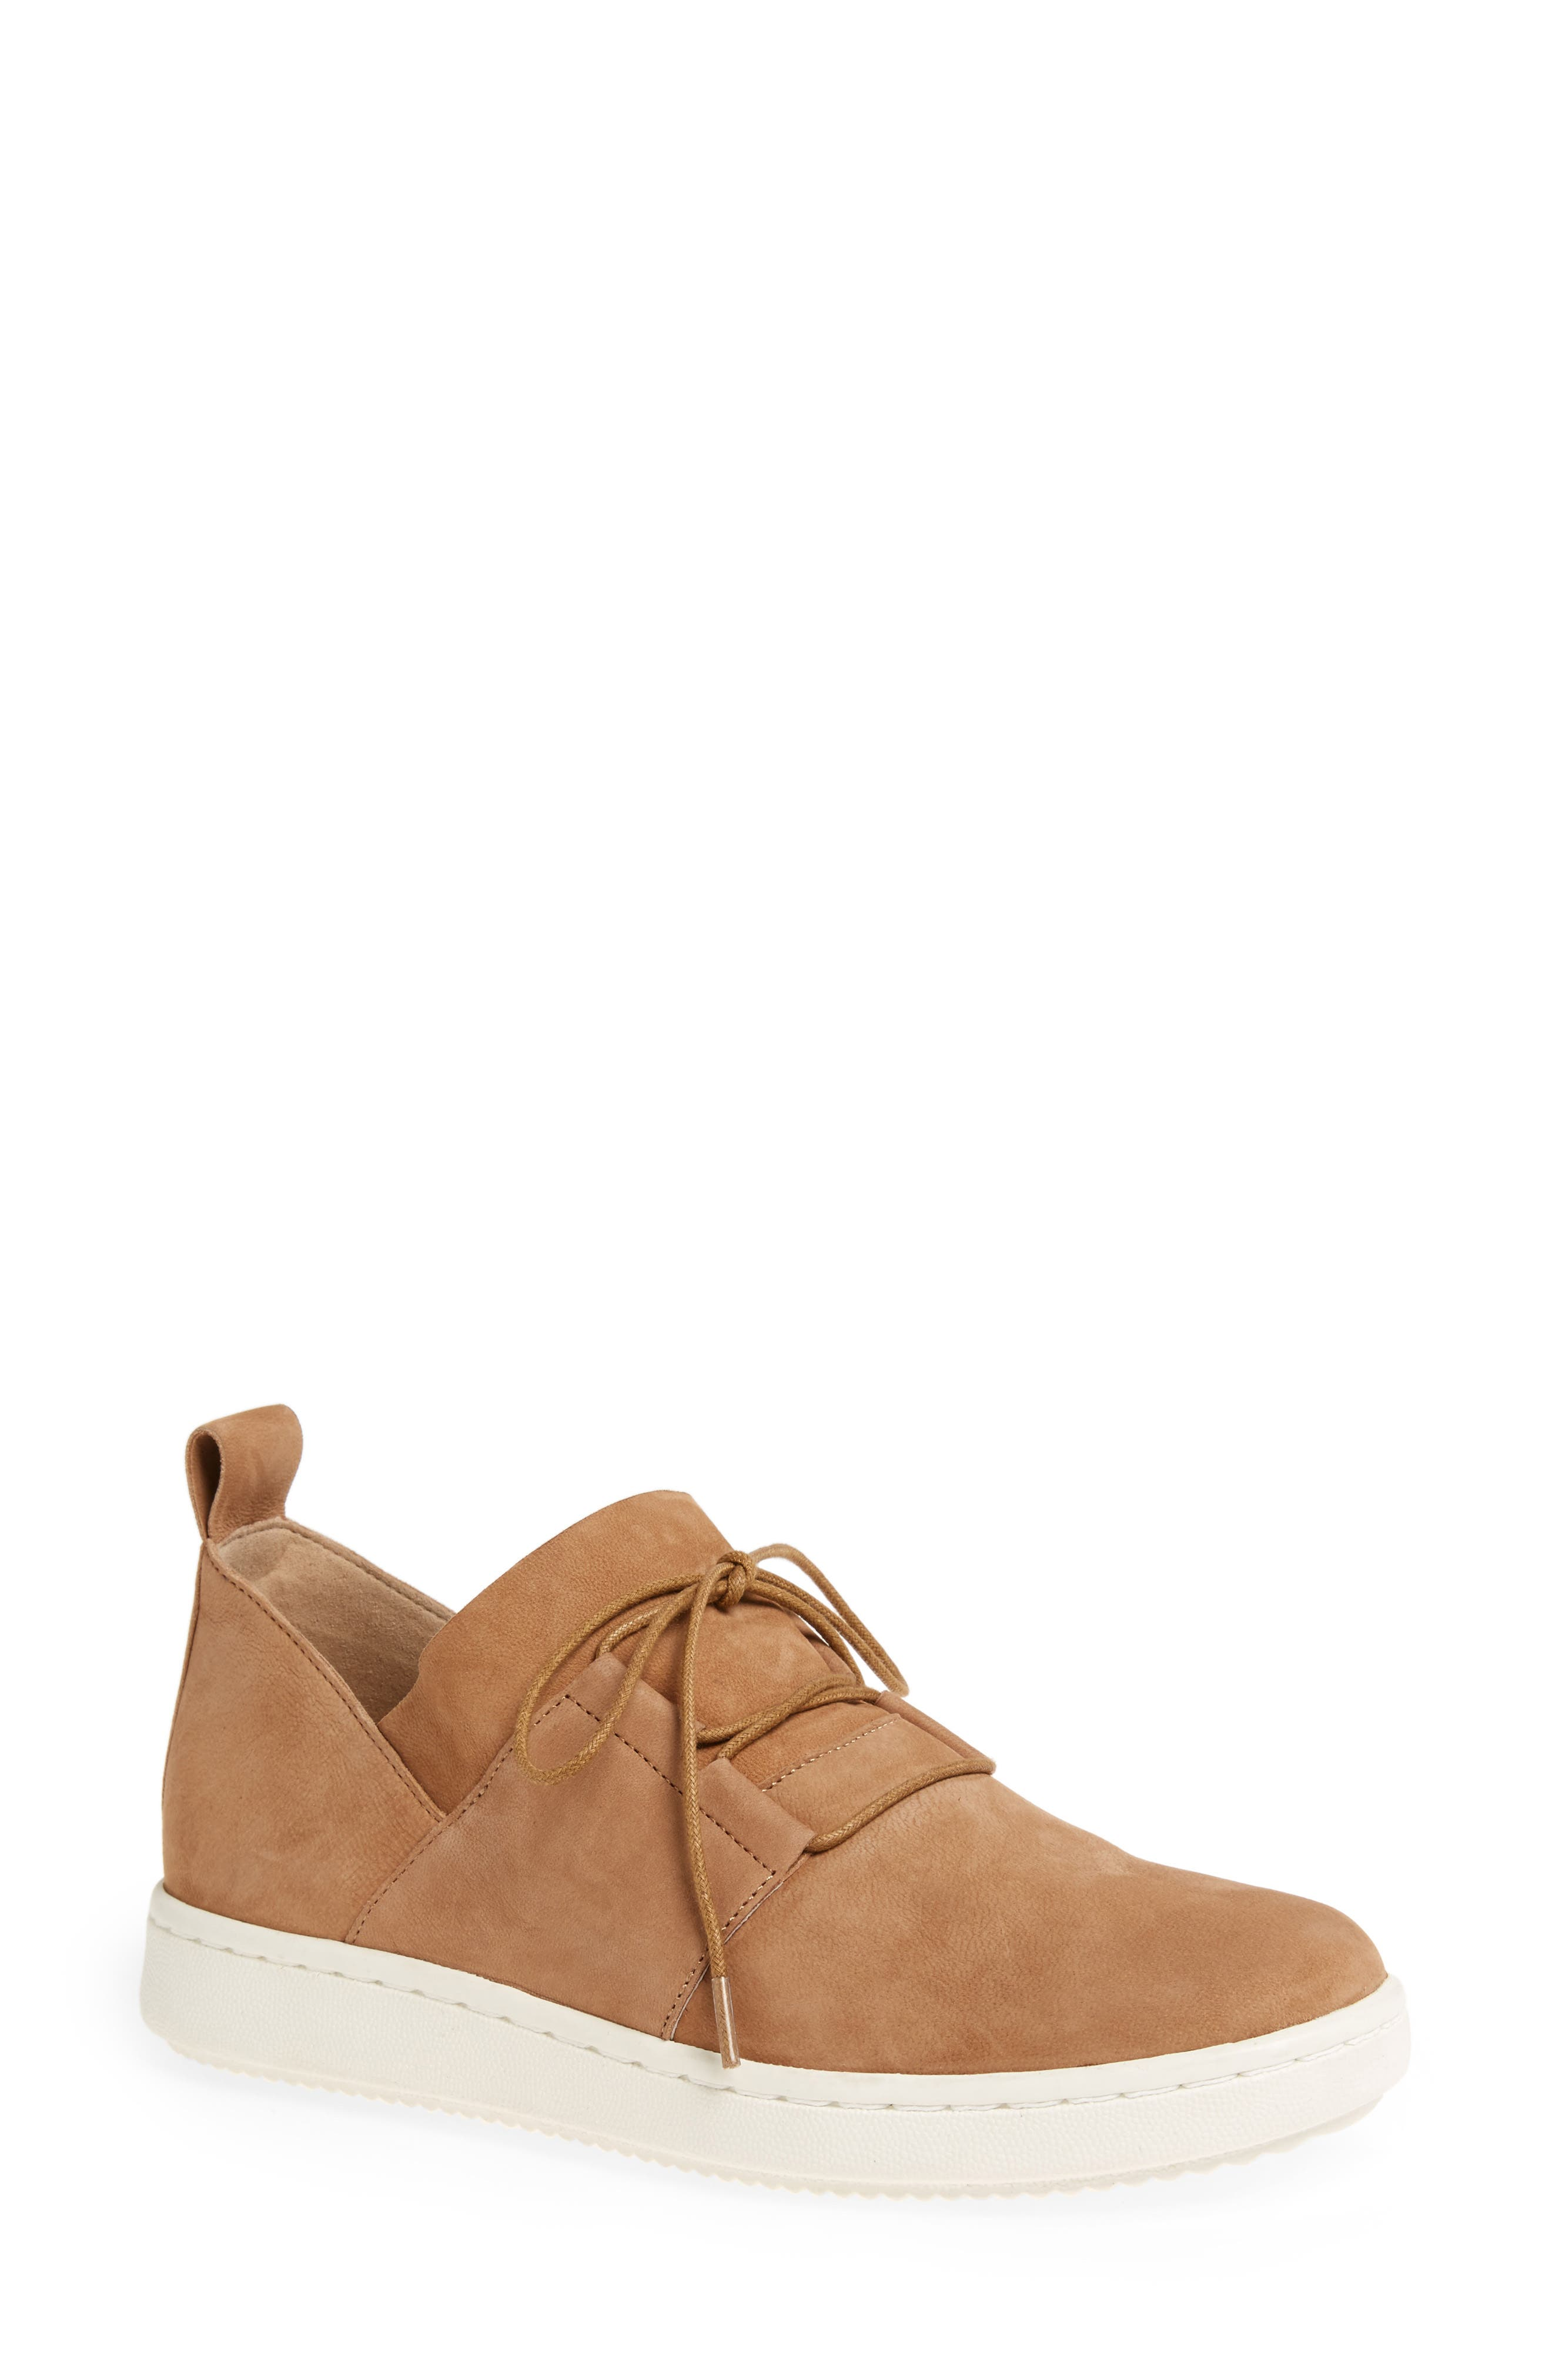 Eileen Fisher Kipling Sneaker (Women)